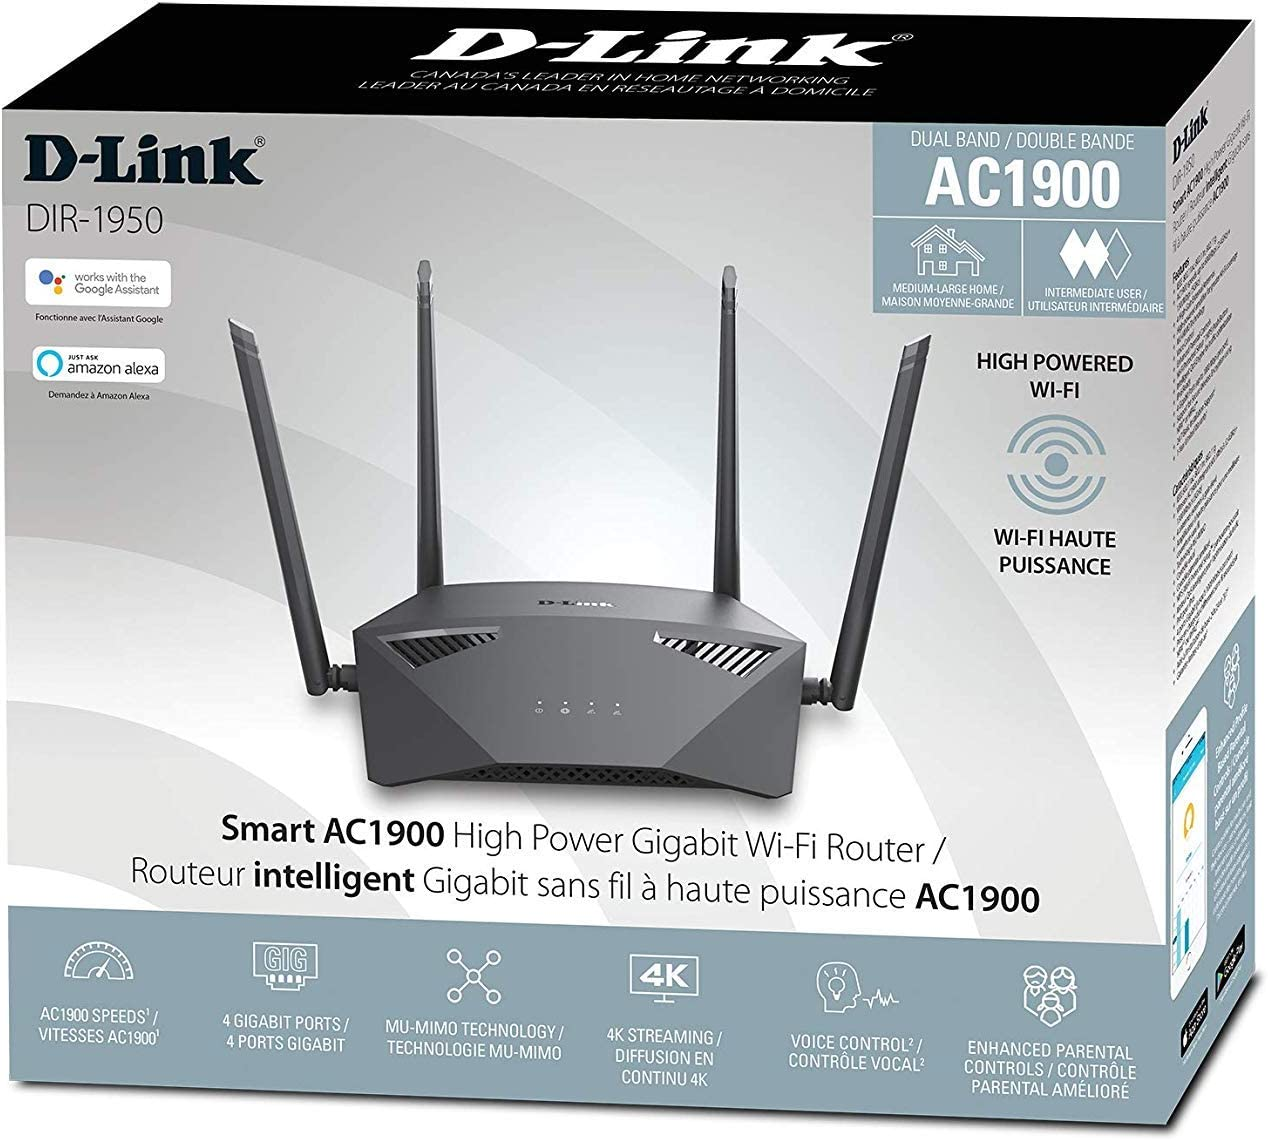 DIR-1950-US black MU-MIMO Dual Band Gigabit Gaming D-Link WiFi Router AC1900 Mesh Smart Internet Network Works with Alexa /& Google Assistant